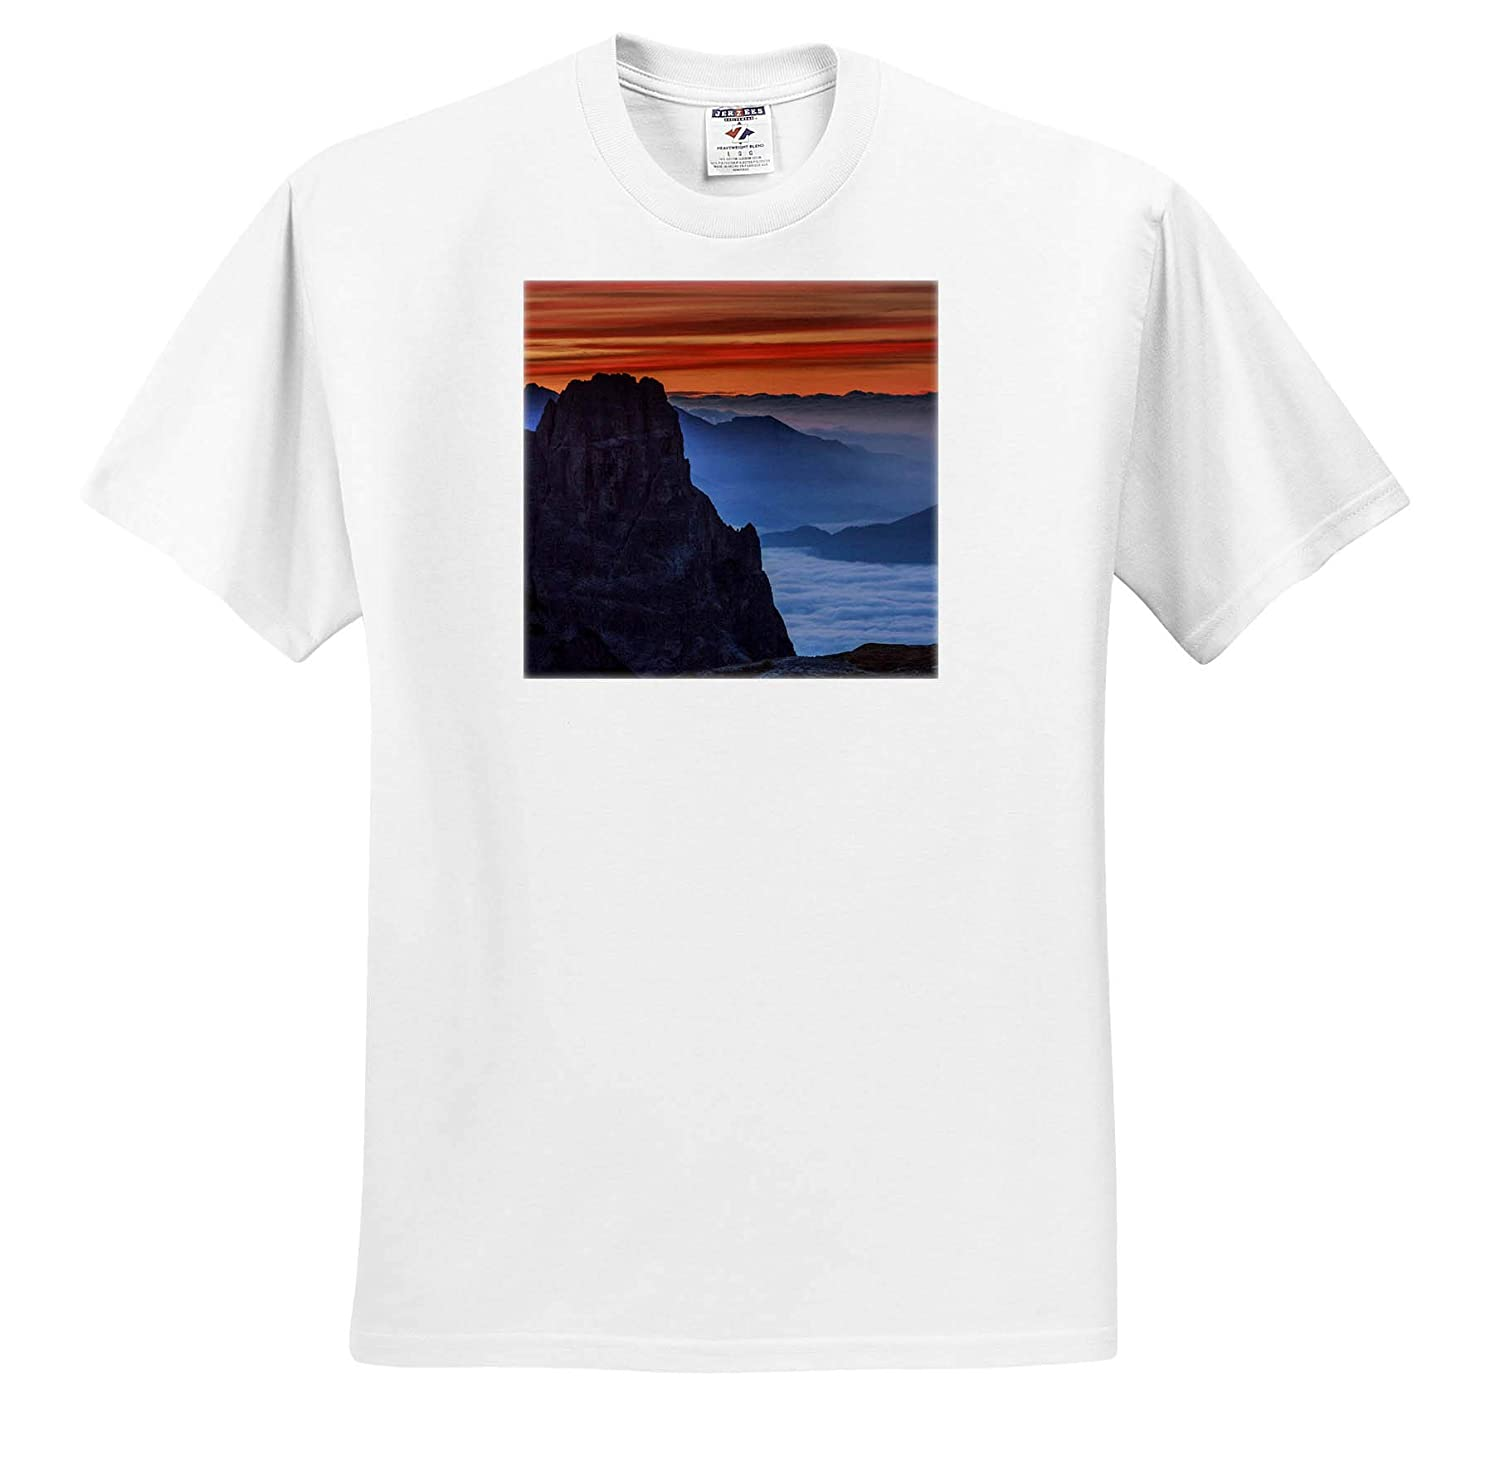 South Tyrolean Dolomites ts/_313692 Mountains 3dRose Danita Delimont Adult T-Shirt XL Italy